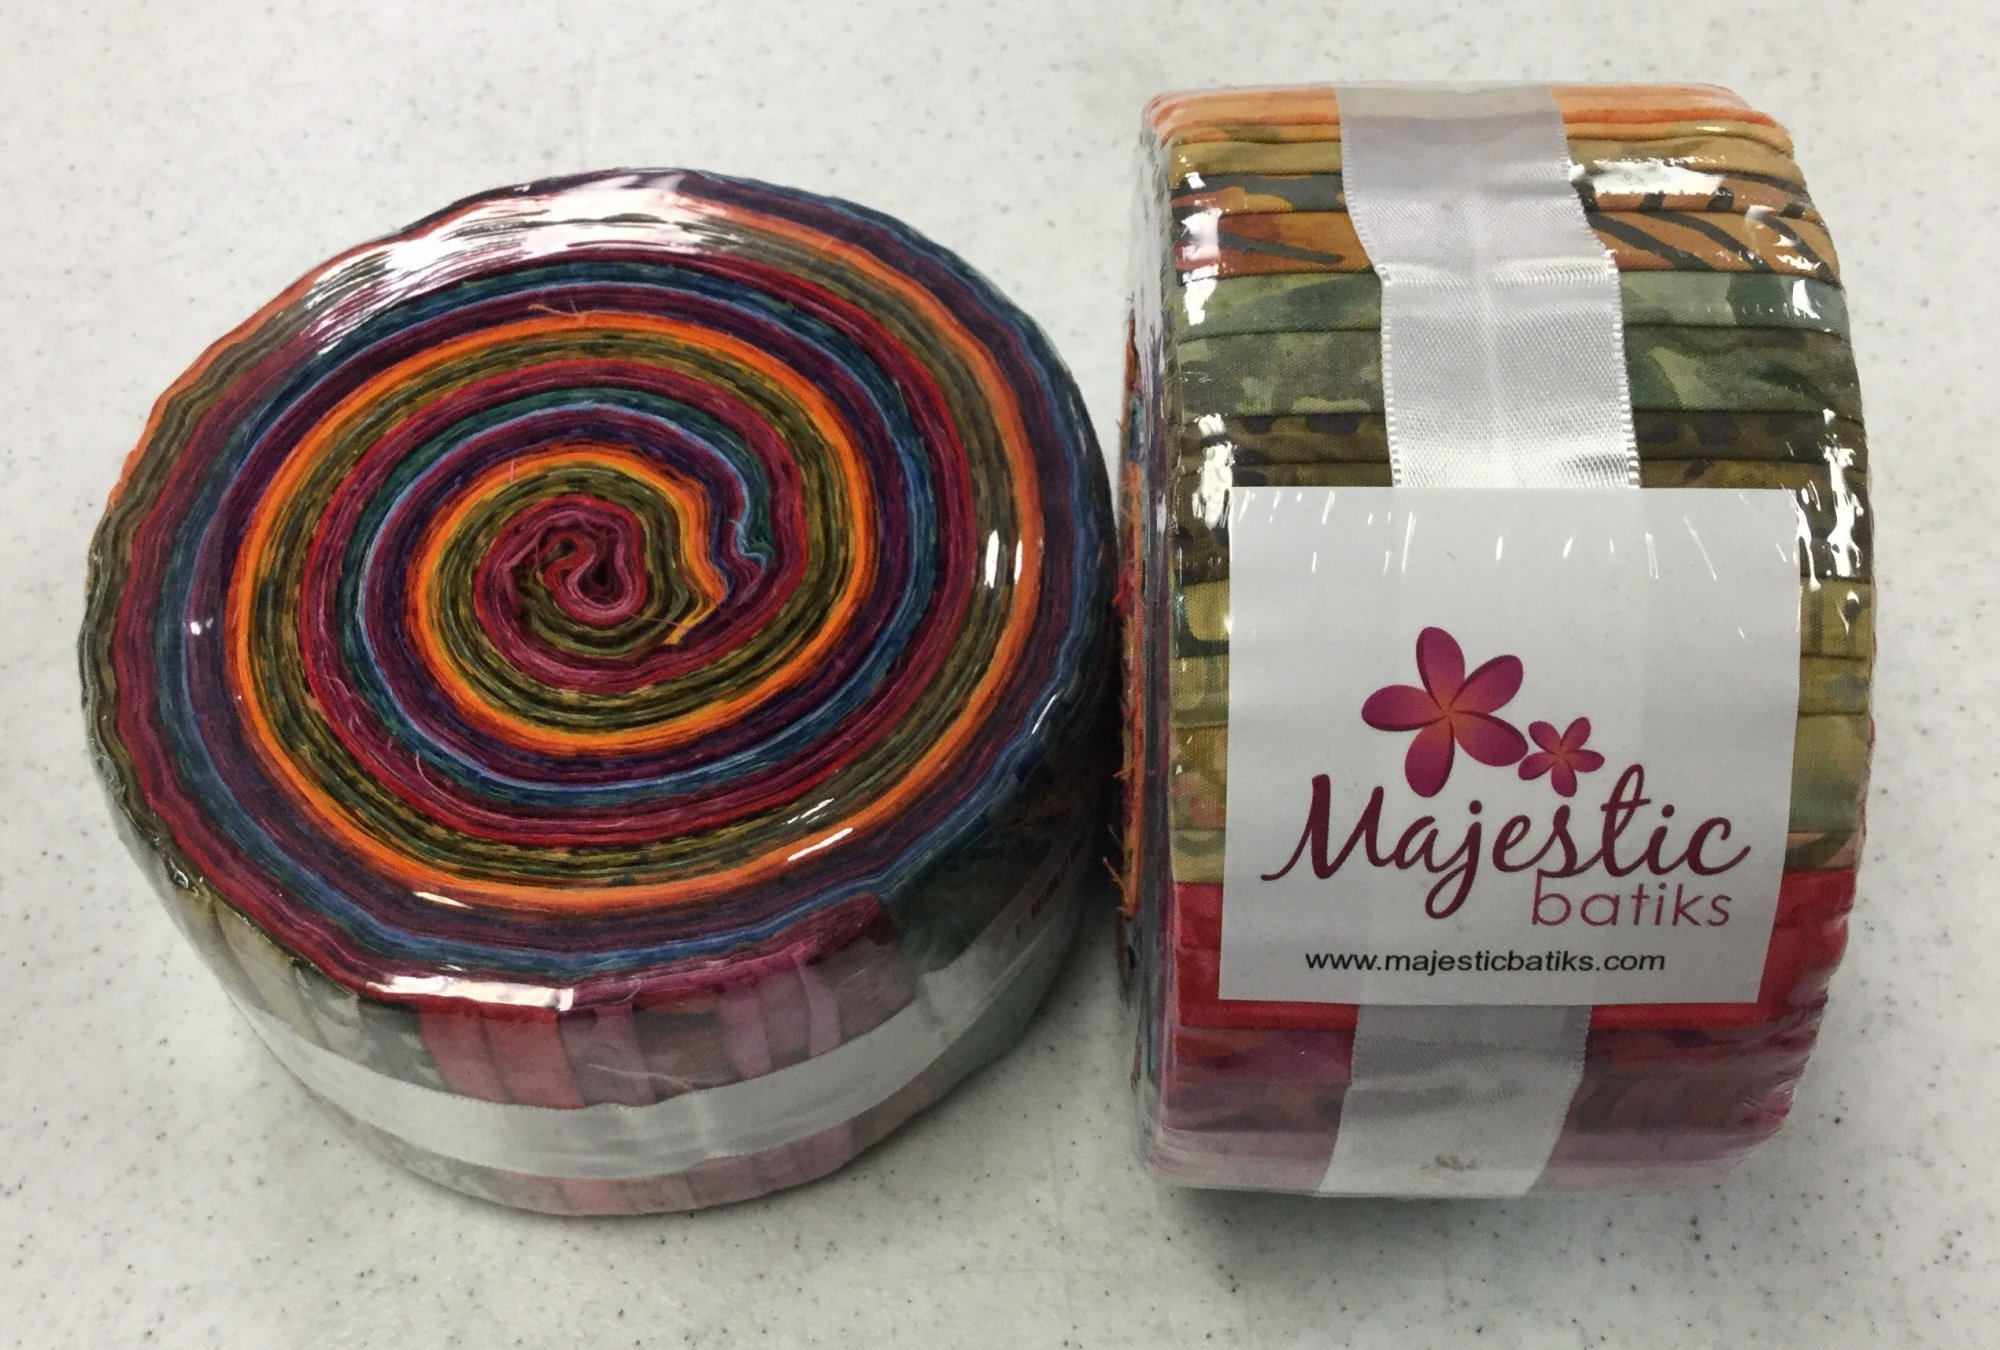 MAJESTIC BATIKS PUMPKIN SPICE JELLY ROLL